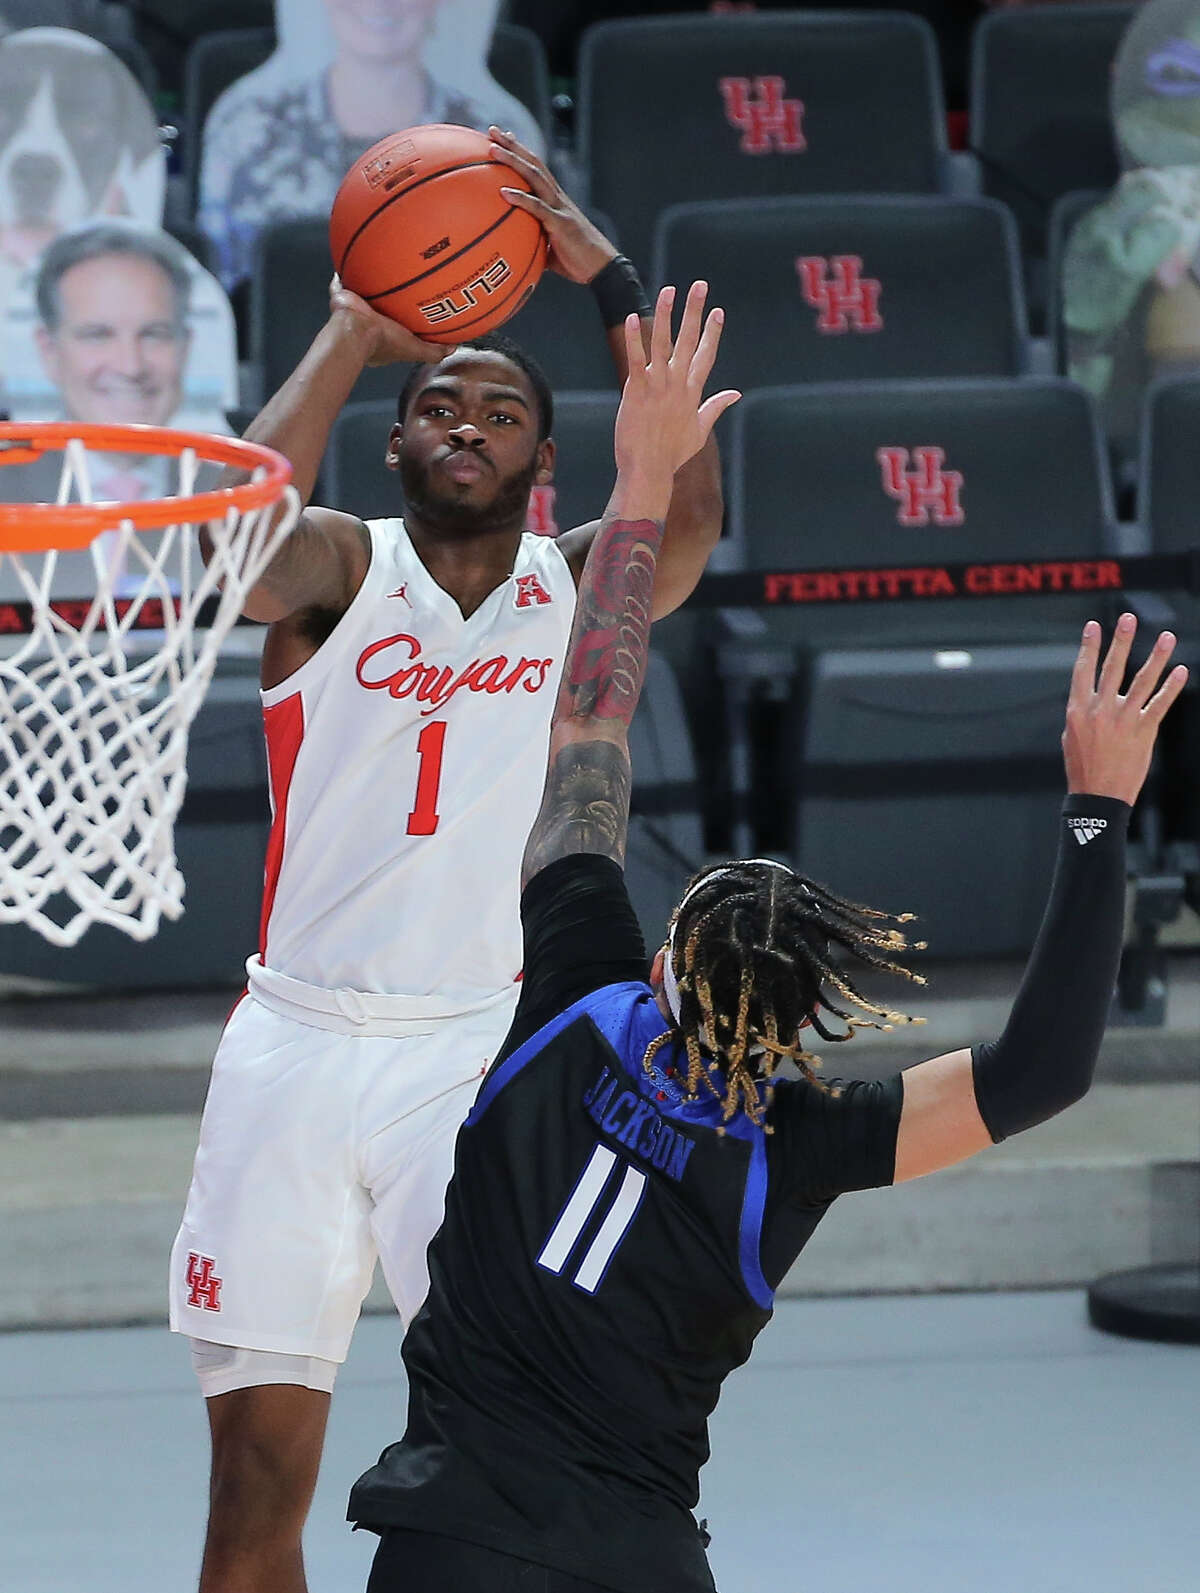 Houston Cougars guard Jamal Shead (1) aims for the basket while Tulsa Golden Hurricane guard Darien Jackson (11) is trying to stop him during the second half of the AAC game Wednesday, Jan. 20, 2021, at Fertitta Center in Houston. Houston Cougars defeated Tulsa Golden Hurricane 86-59.